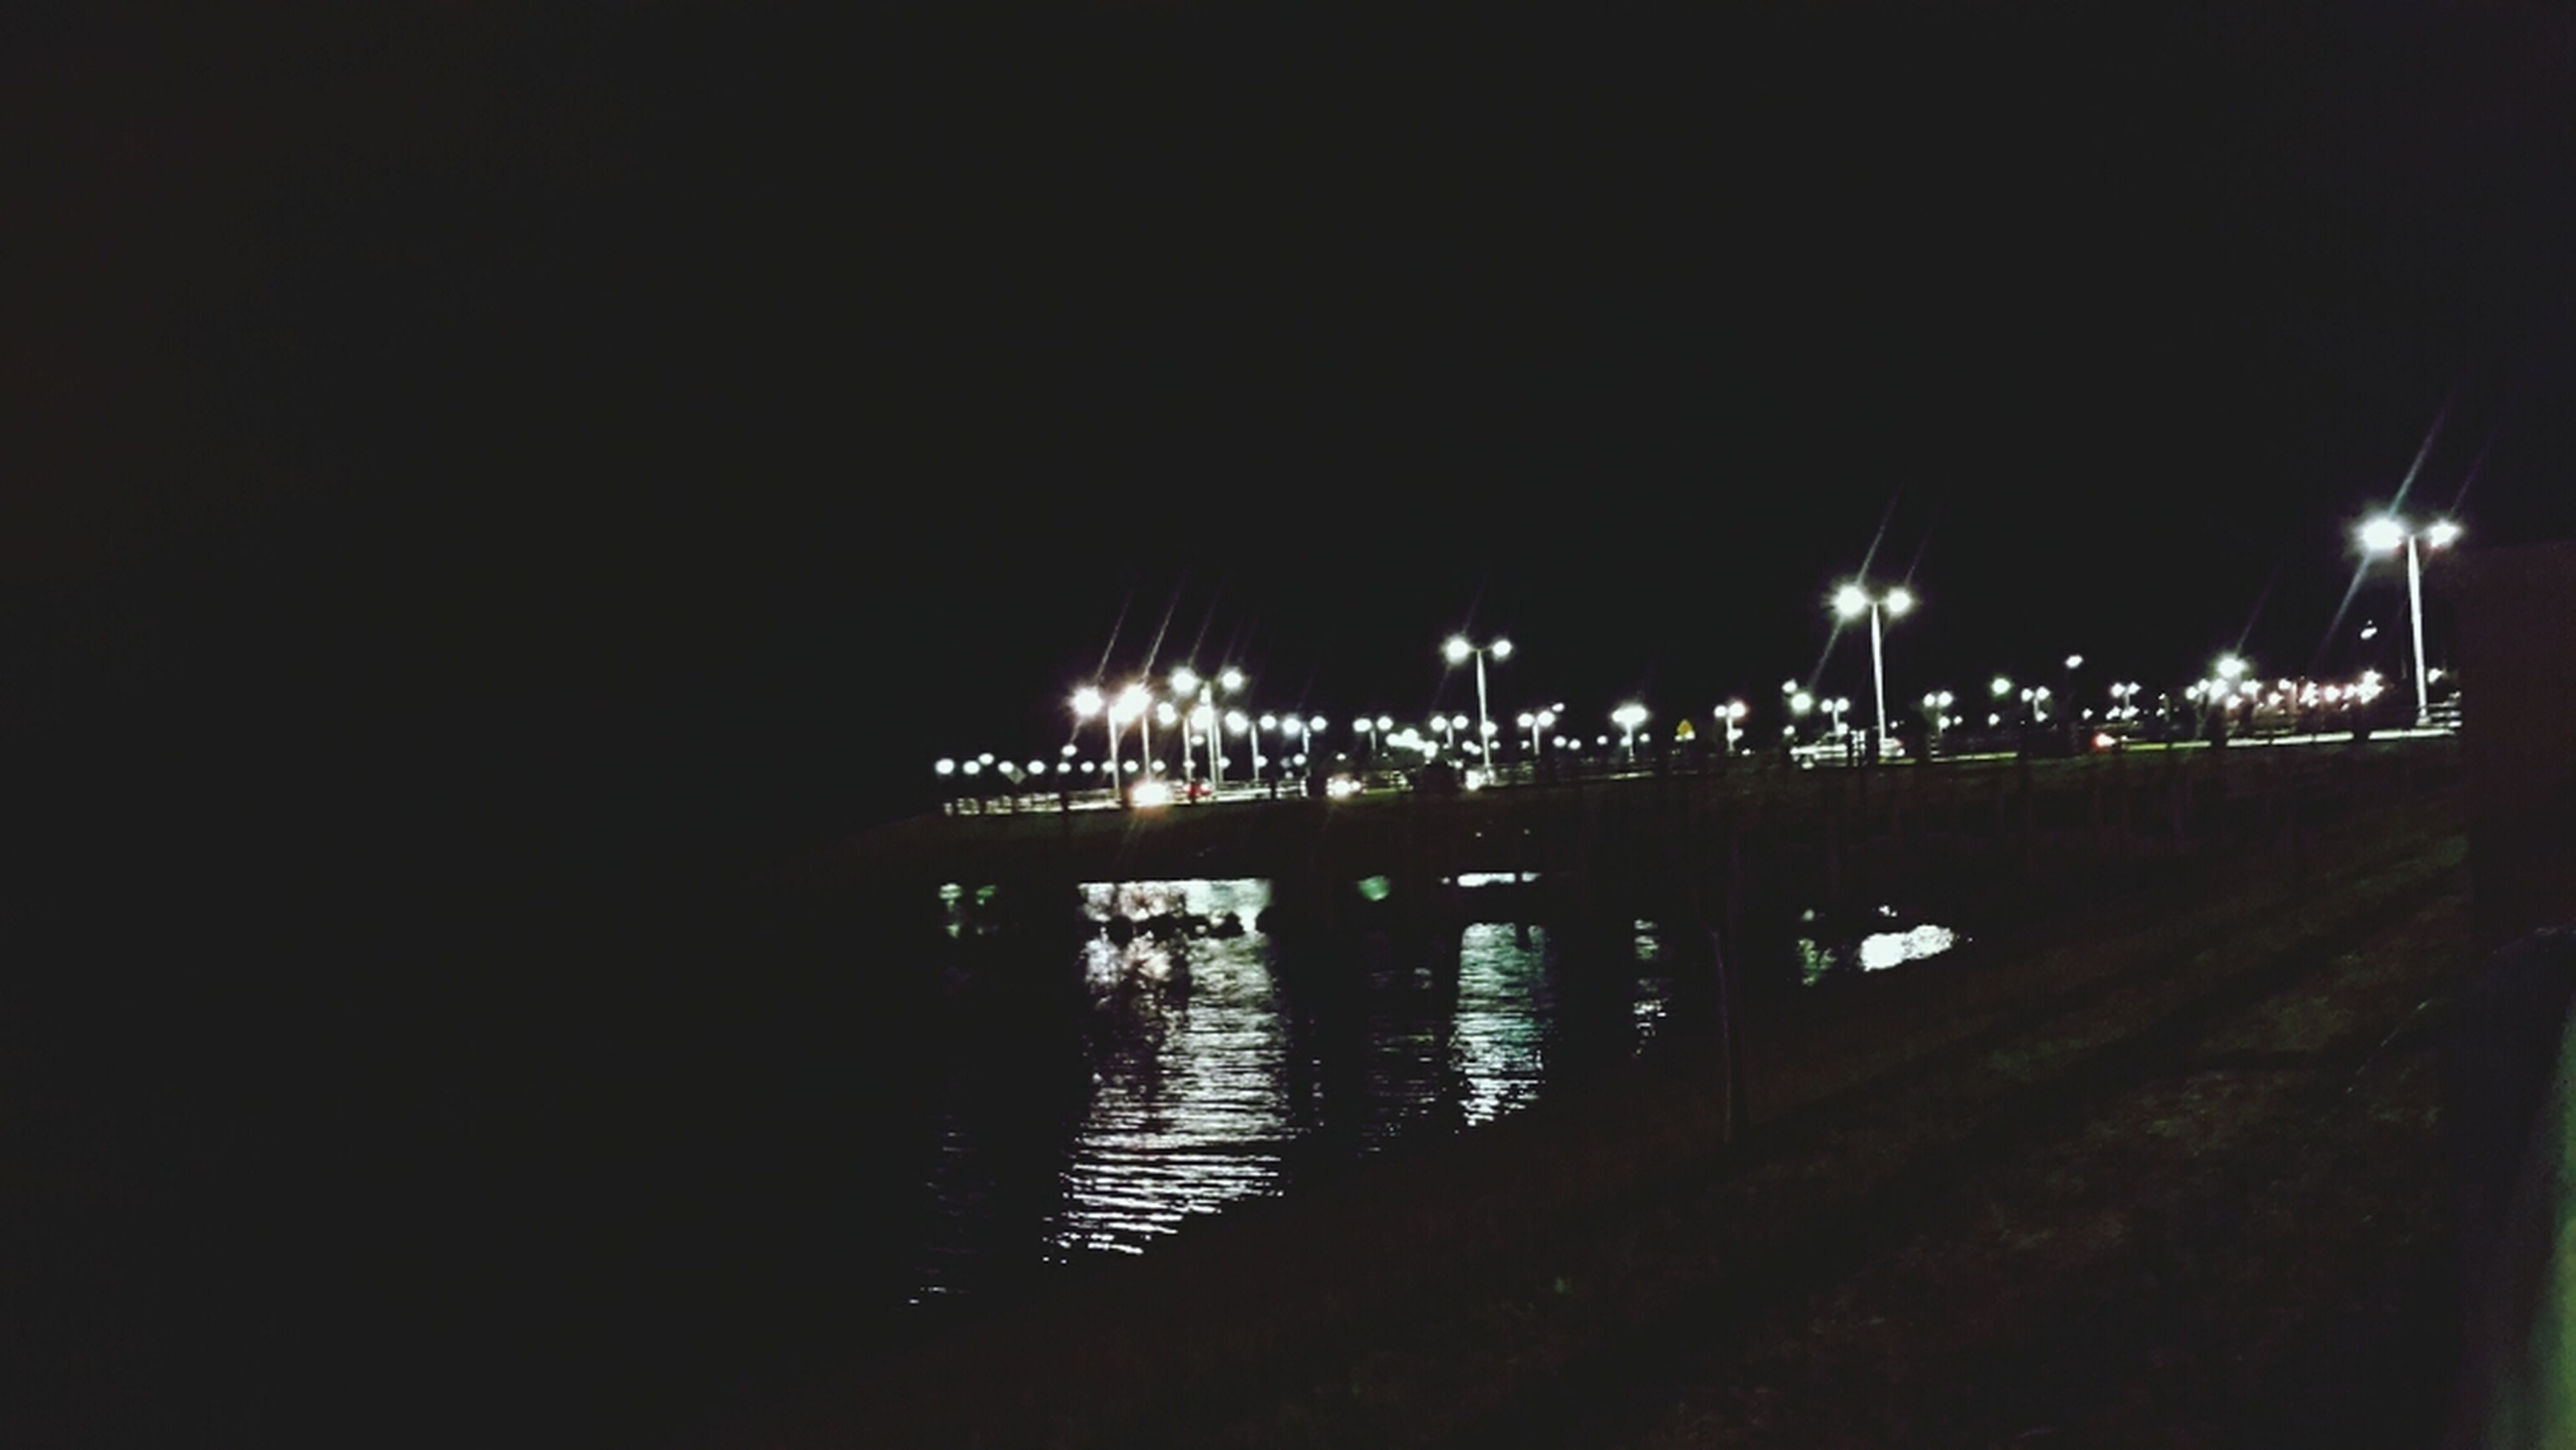 night, illuminated, water, reflection, built structure, architecture, dark, river, waterfront, street light, lighting equipment, copy space, clear sky, building exterior, city, outdoors, no people, bridge - man made structure, connection, transportation